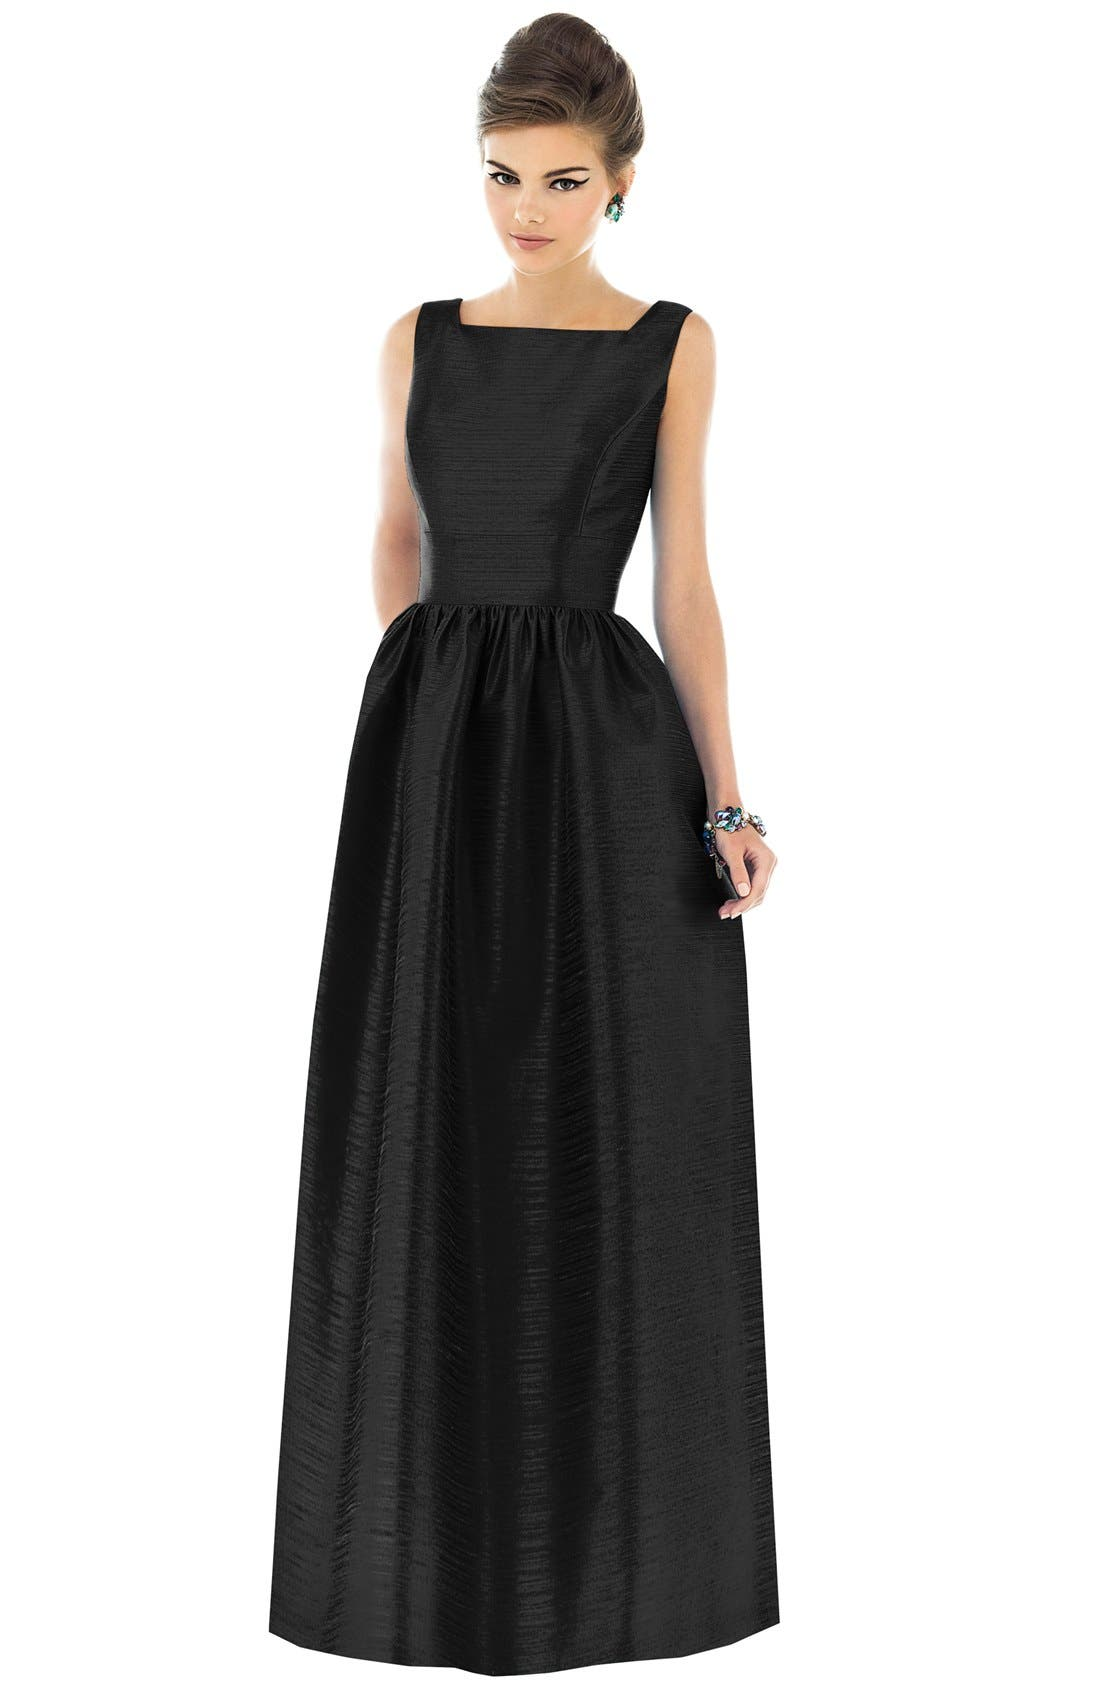 Alternate Image 1 Selected - Alfred Sung Square Neck Dupioni Full Length Dress